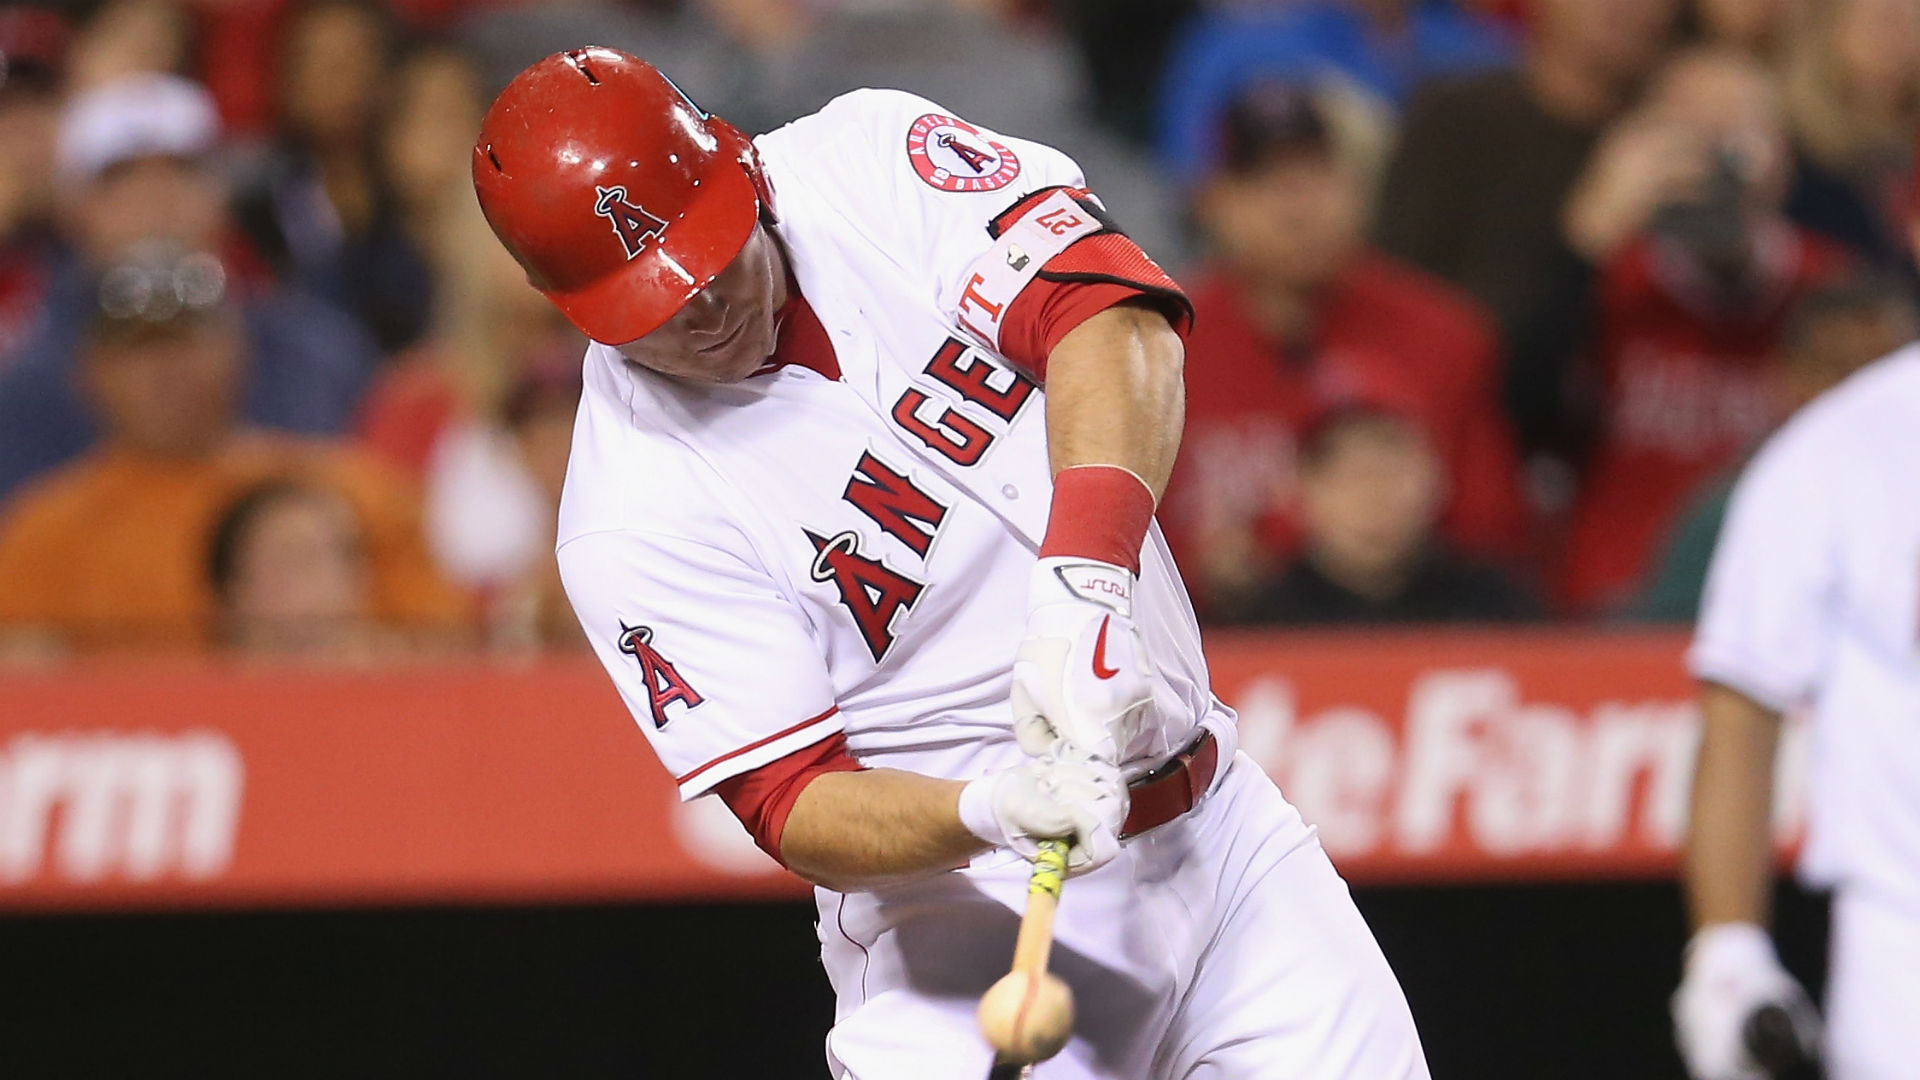 Angels star Trout has torn thumb ligament, surgery possible